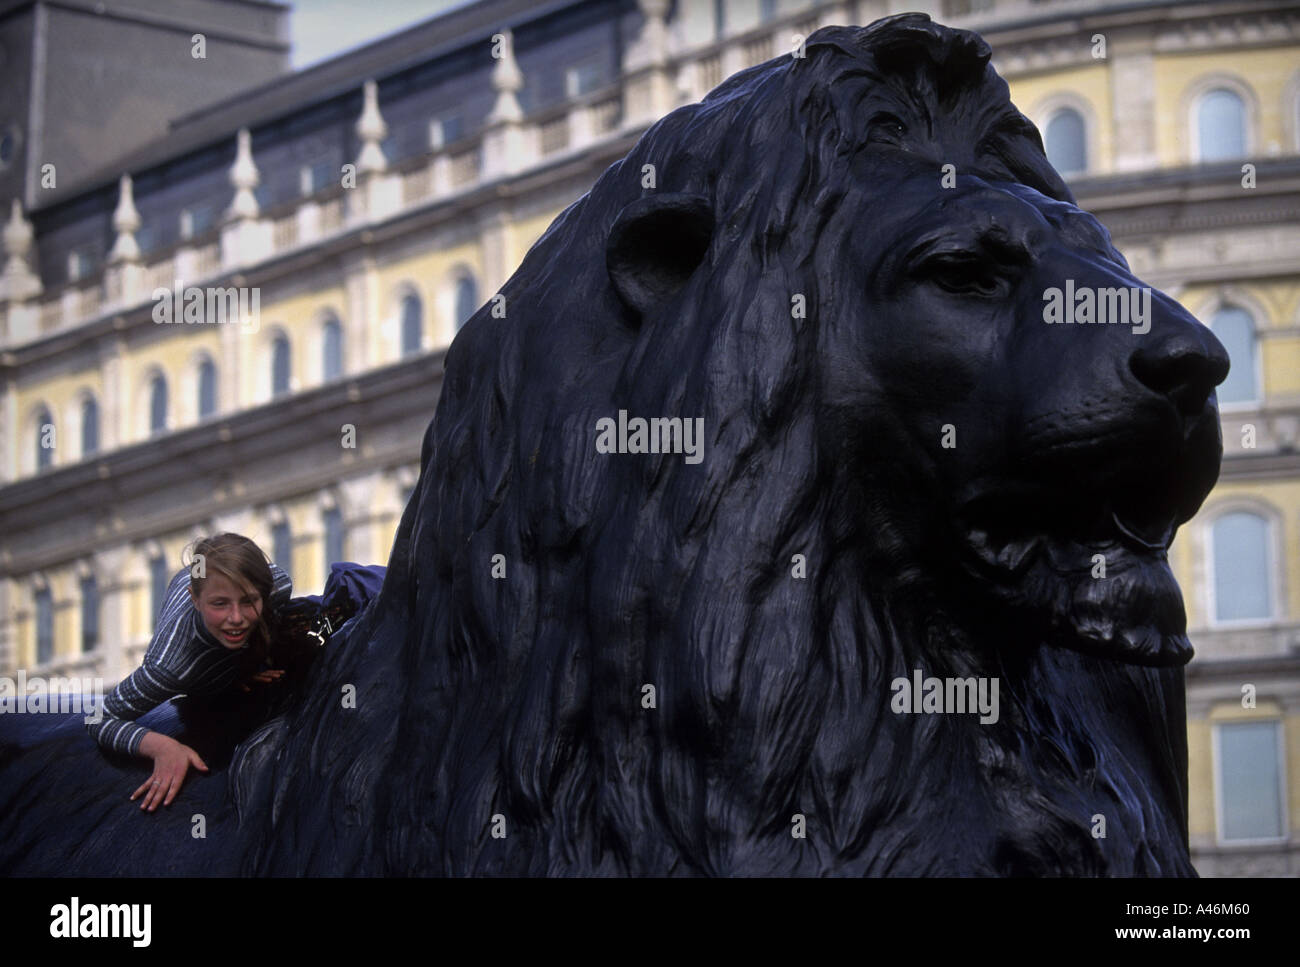 A child climbs onto a lion sculpture at the base of Nelsons Column in Trafalgar Square in London - Stock Image